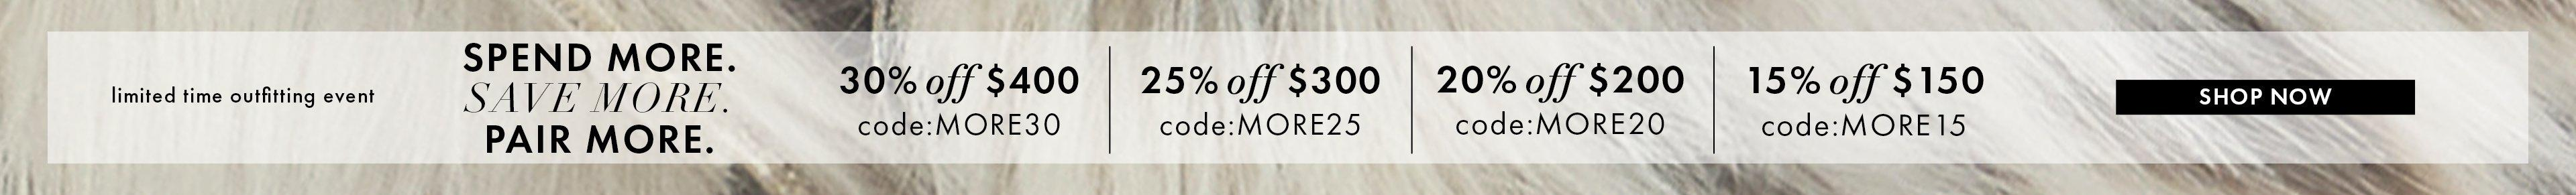 black text on silver background explaining the sale.